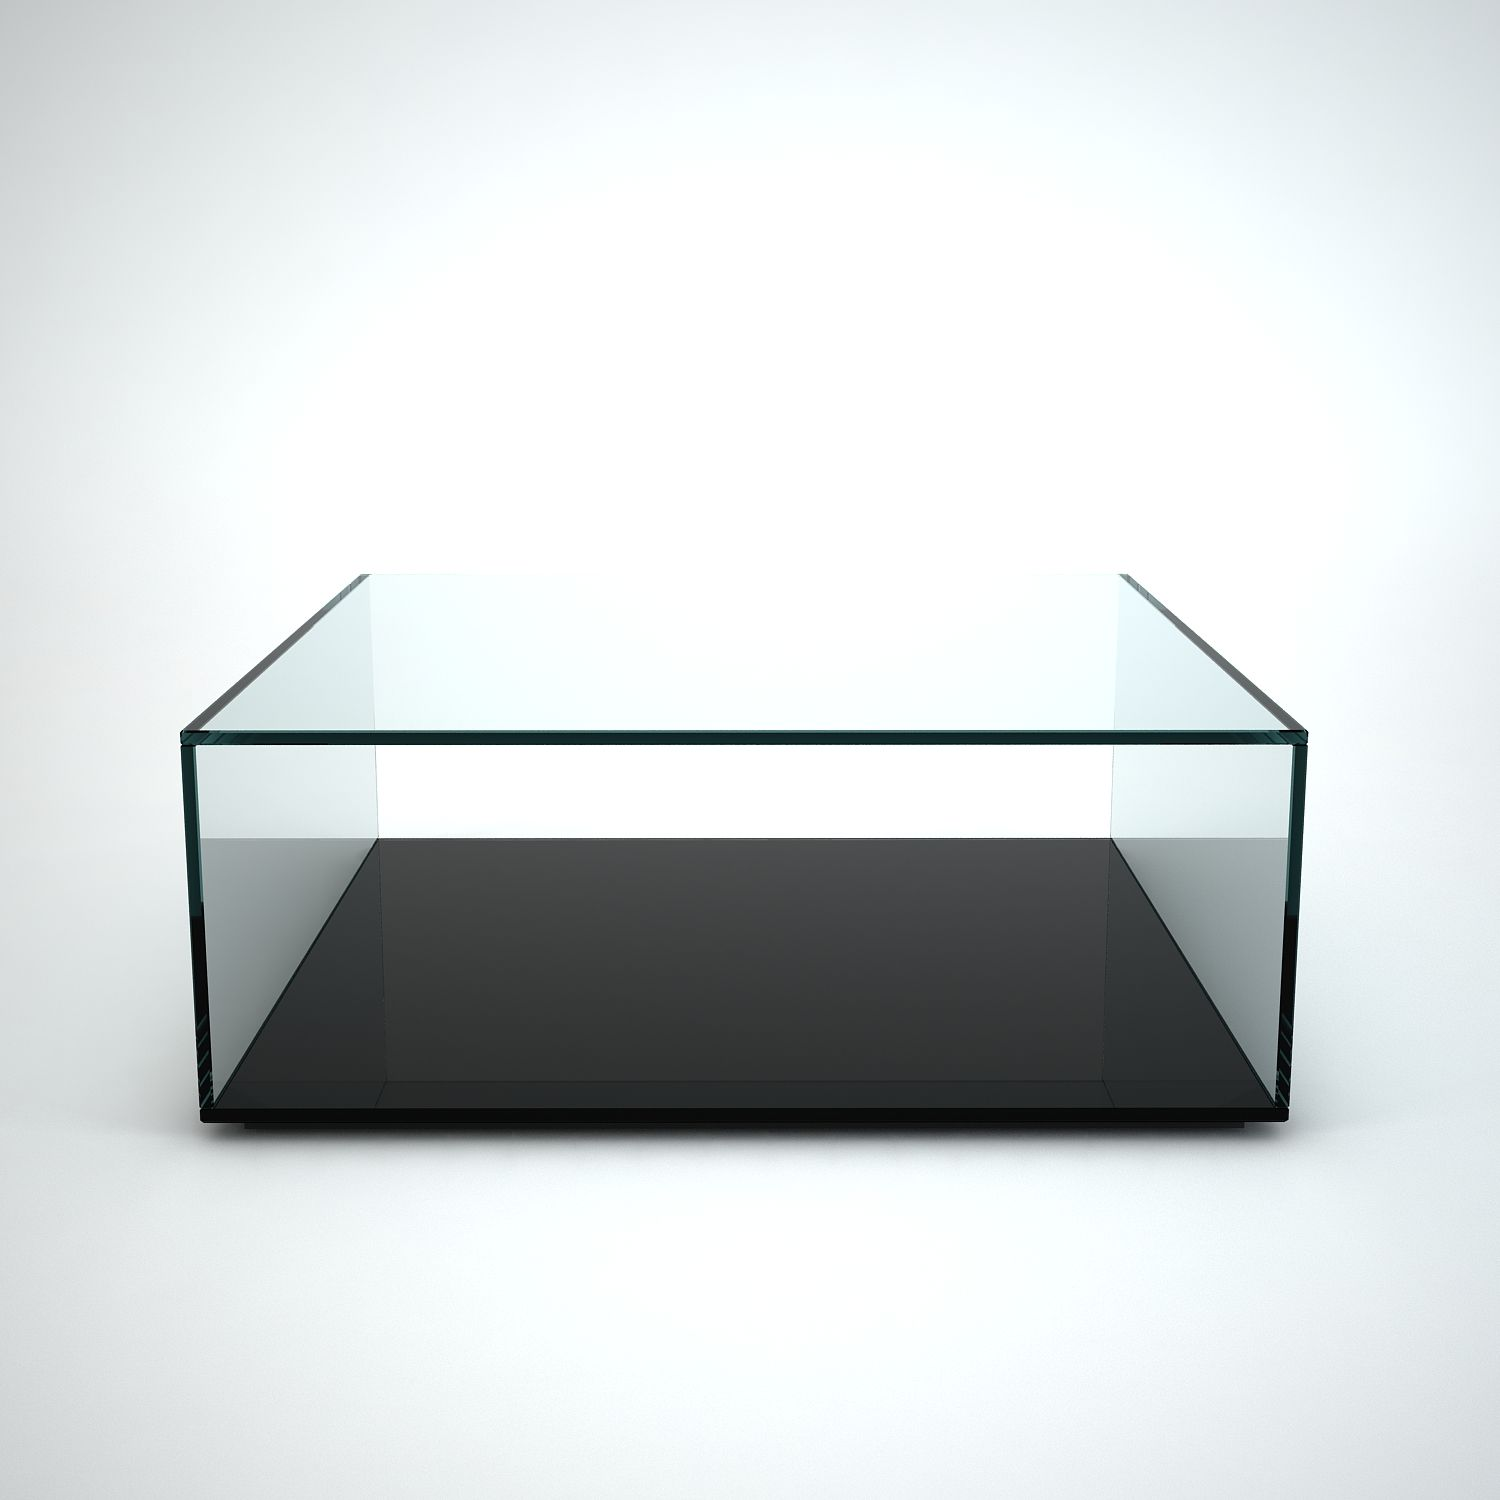 Quebec Square Glass Coffee Table by Klarity - Klarity